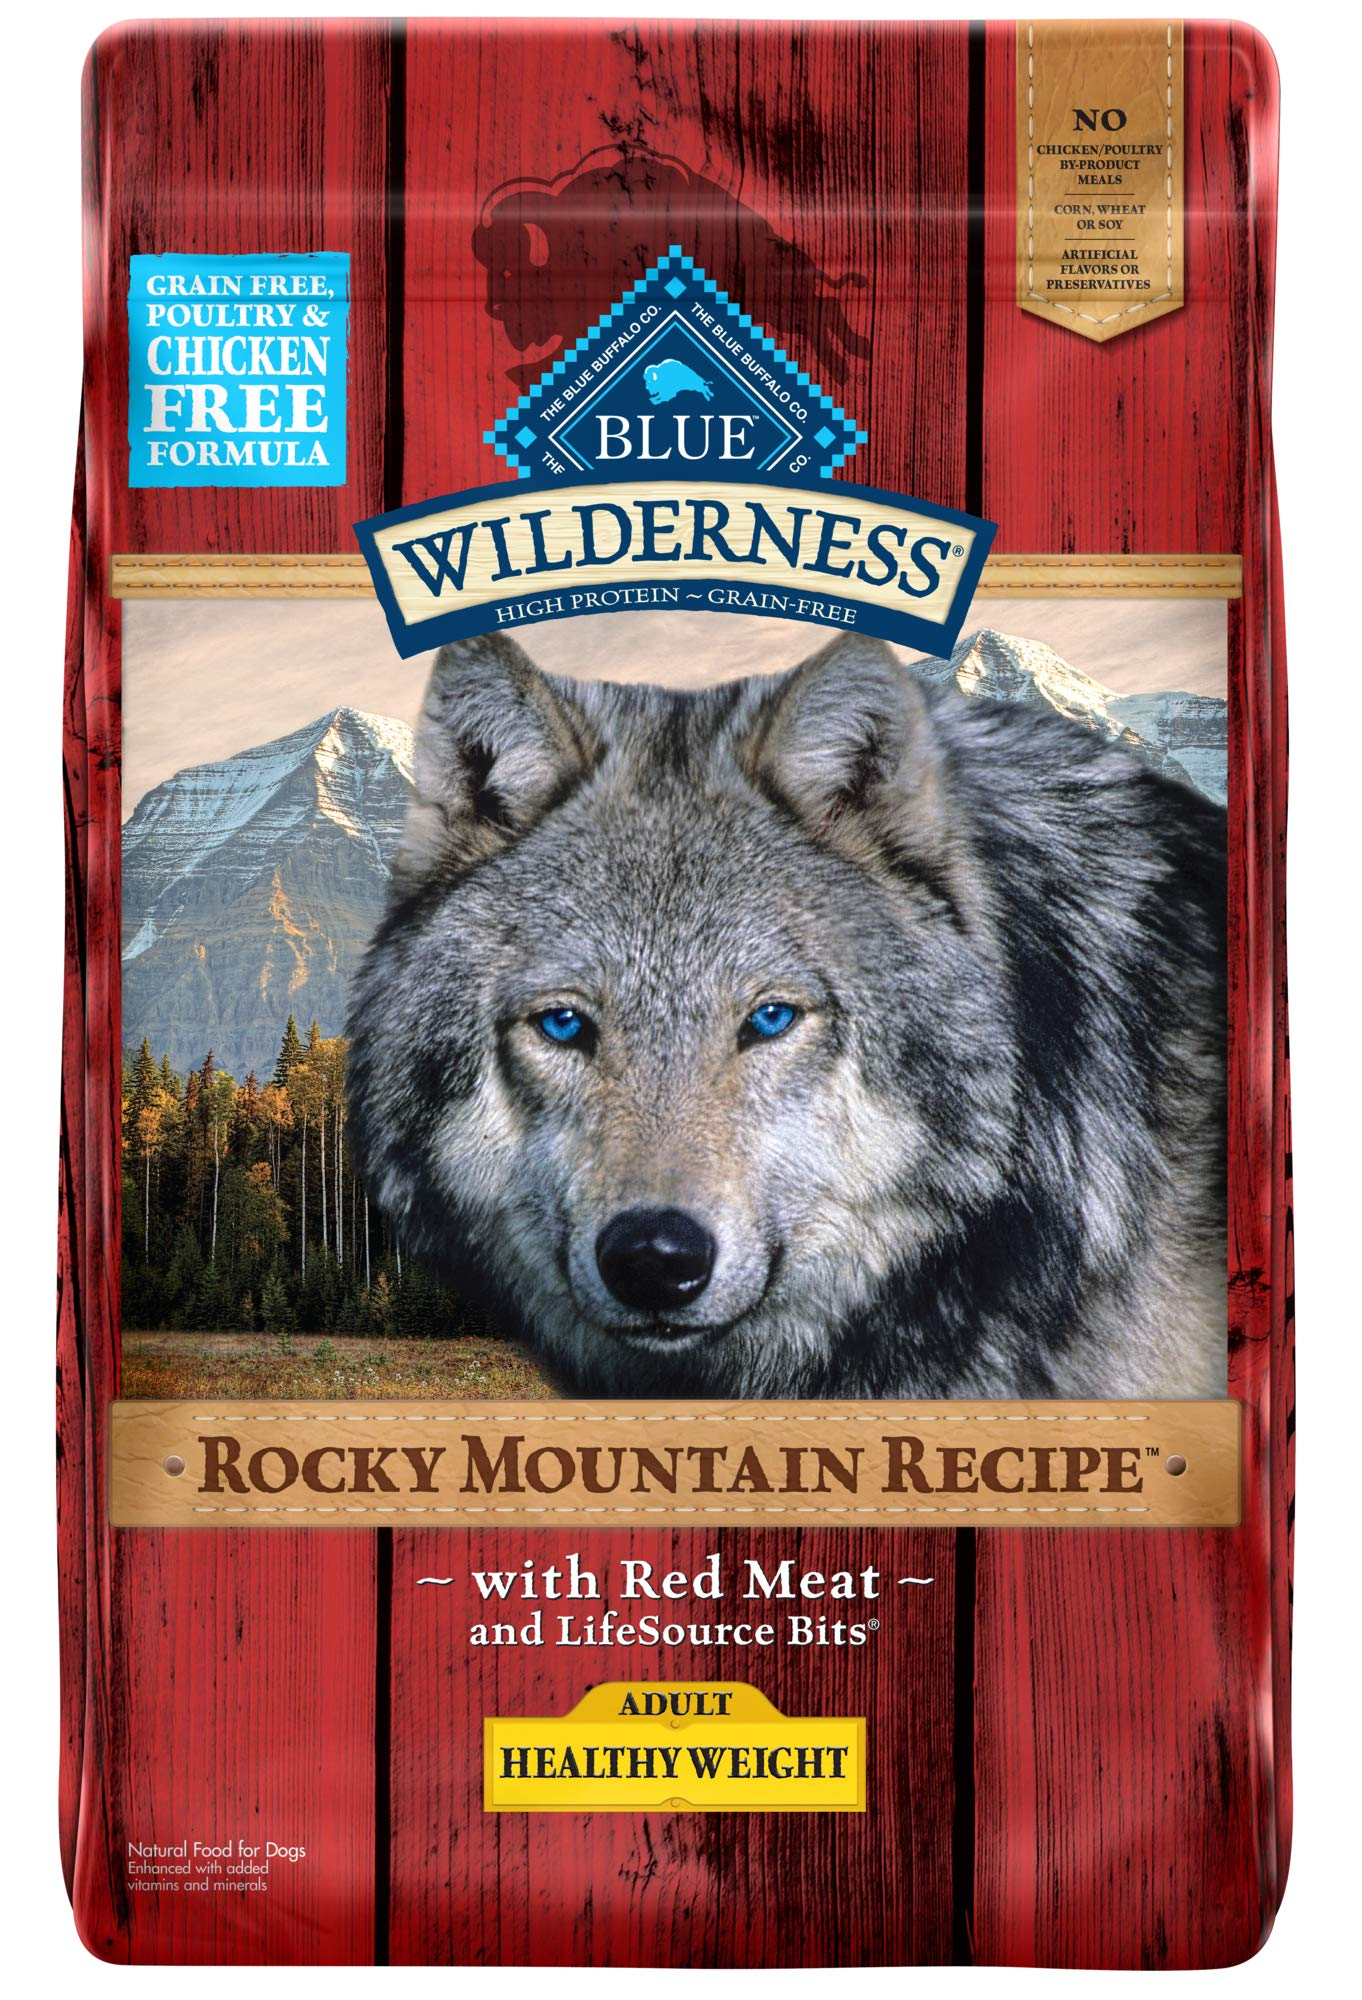 Blue Buffalo Wilderness Rocky Mountain Recipe High Protein Grain Free, Natural Adult Healthy Weight Dry Dog Food, Red Meat 22-lb by Blue Buffalo